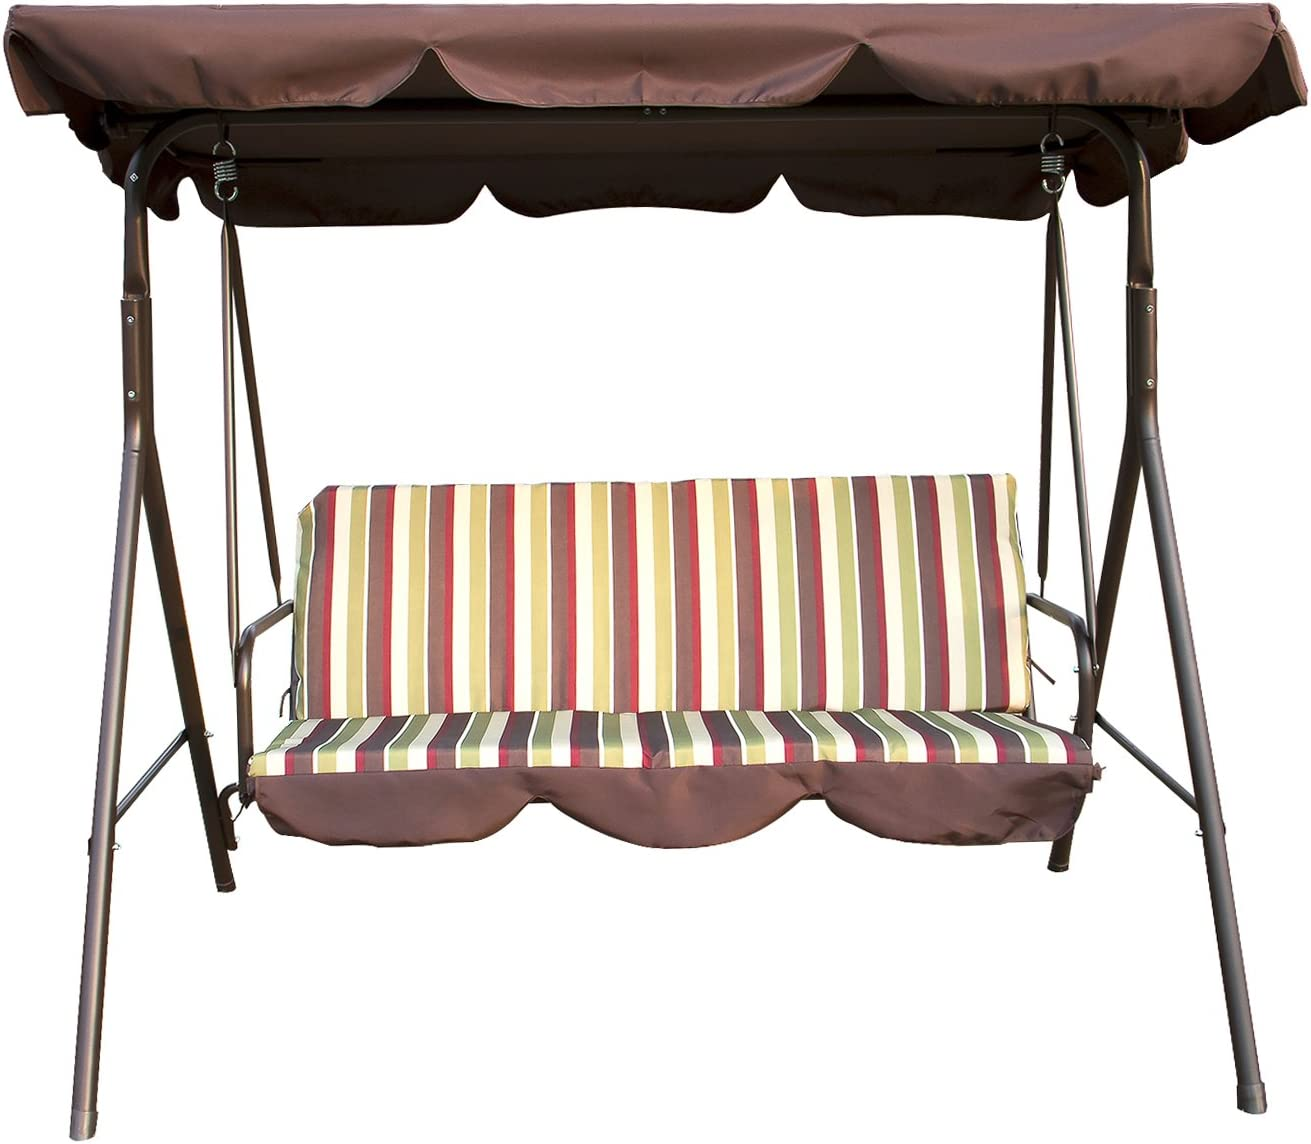 Sliverylake Outdoor Patio Swing Chair 3 Person Porch Cushion with Stand Glider Hammock Bench with Canopy Seating Backyard Furniture Steel Frame